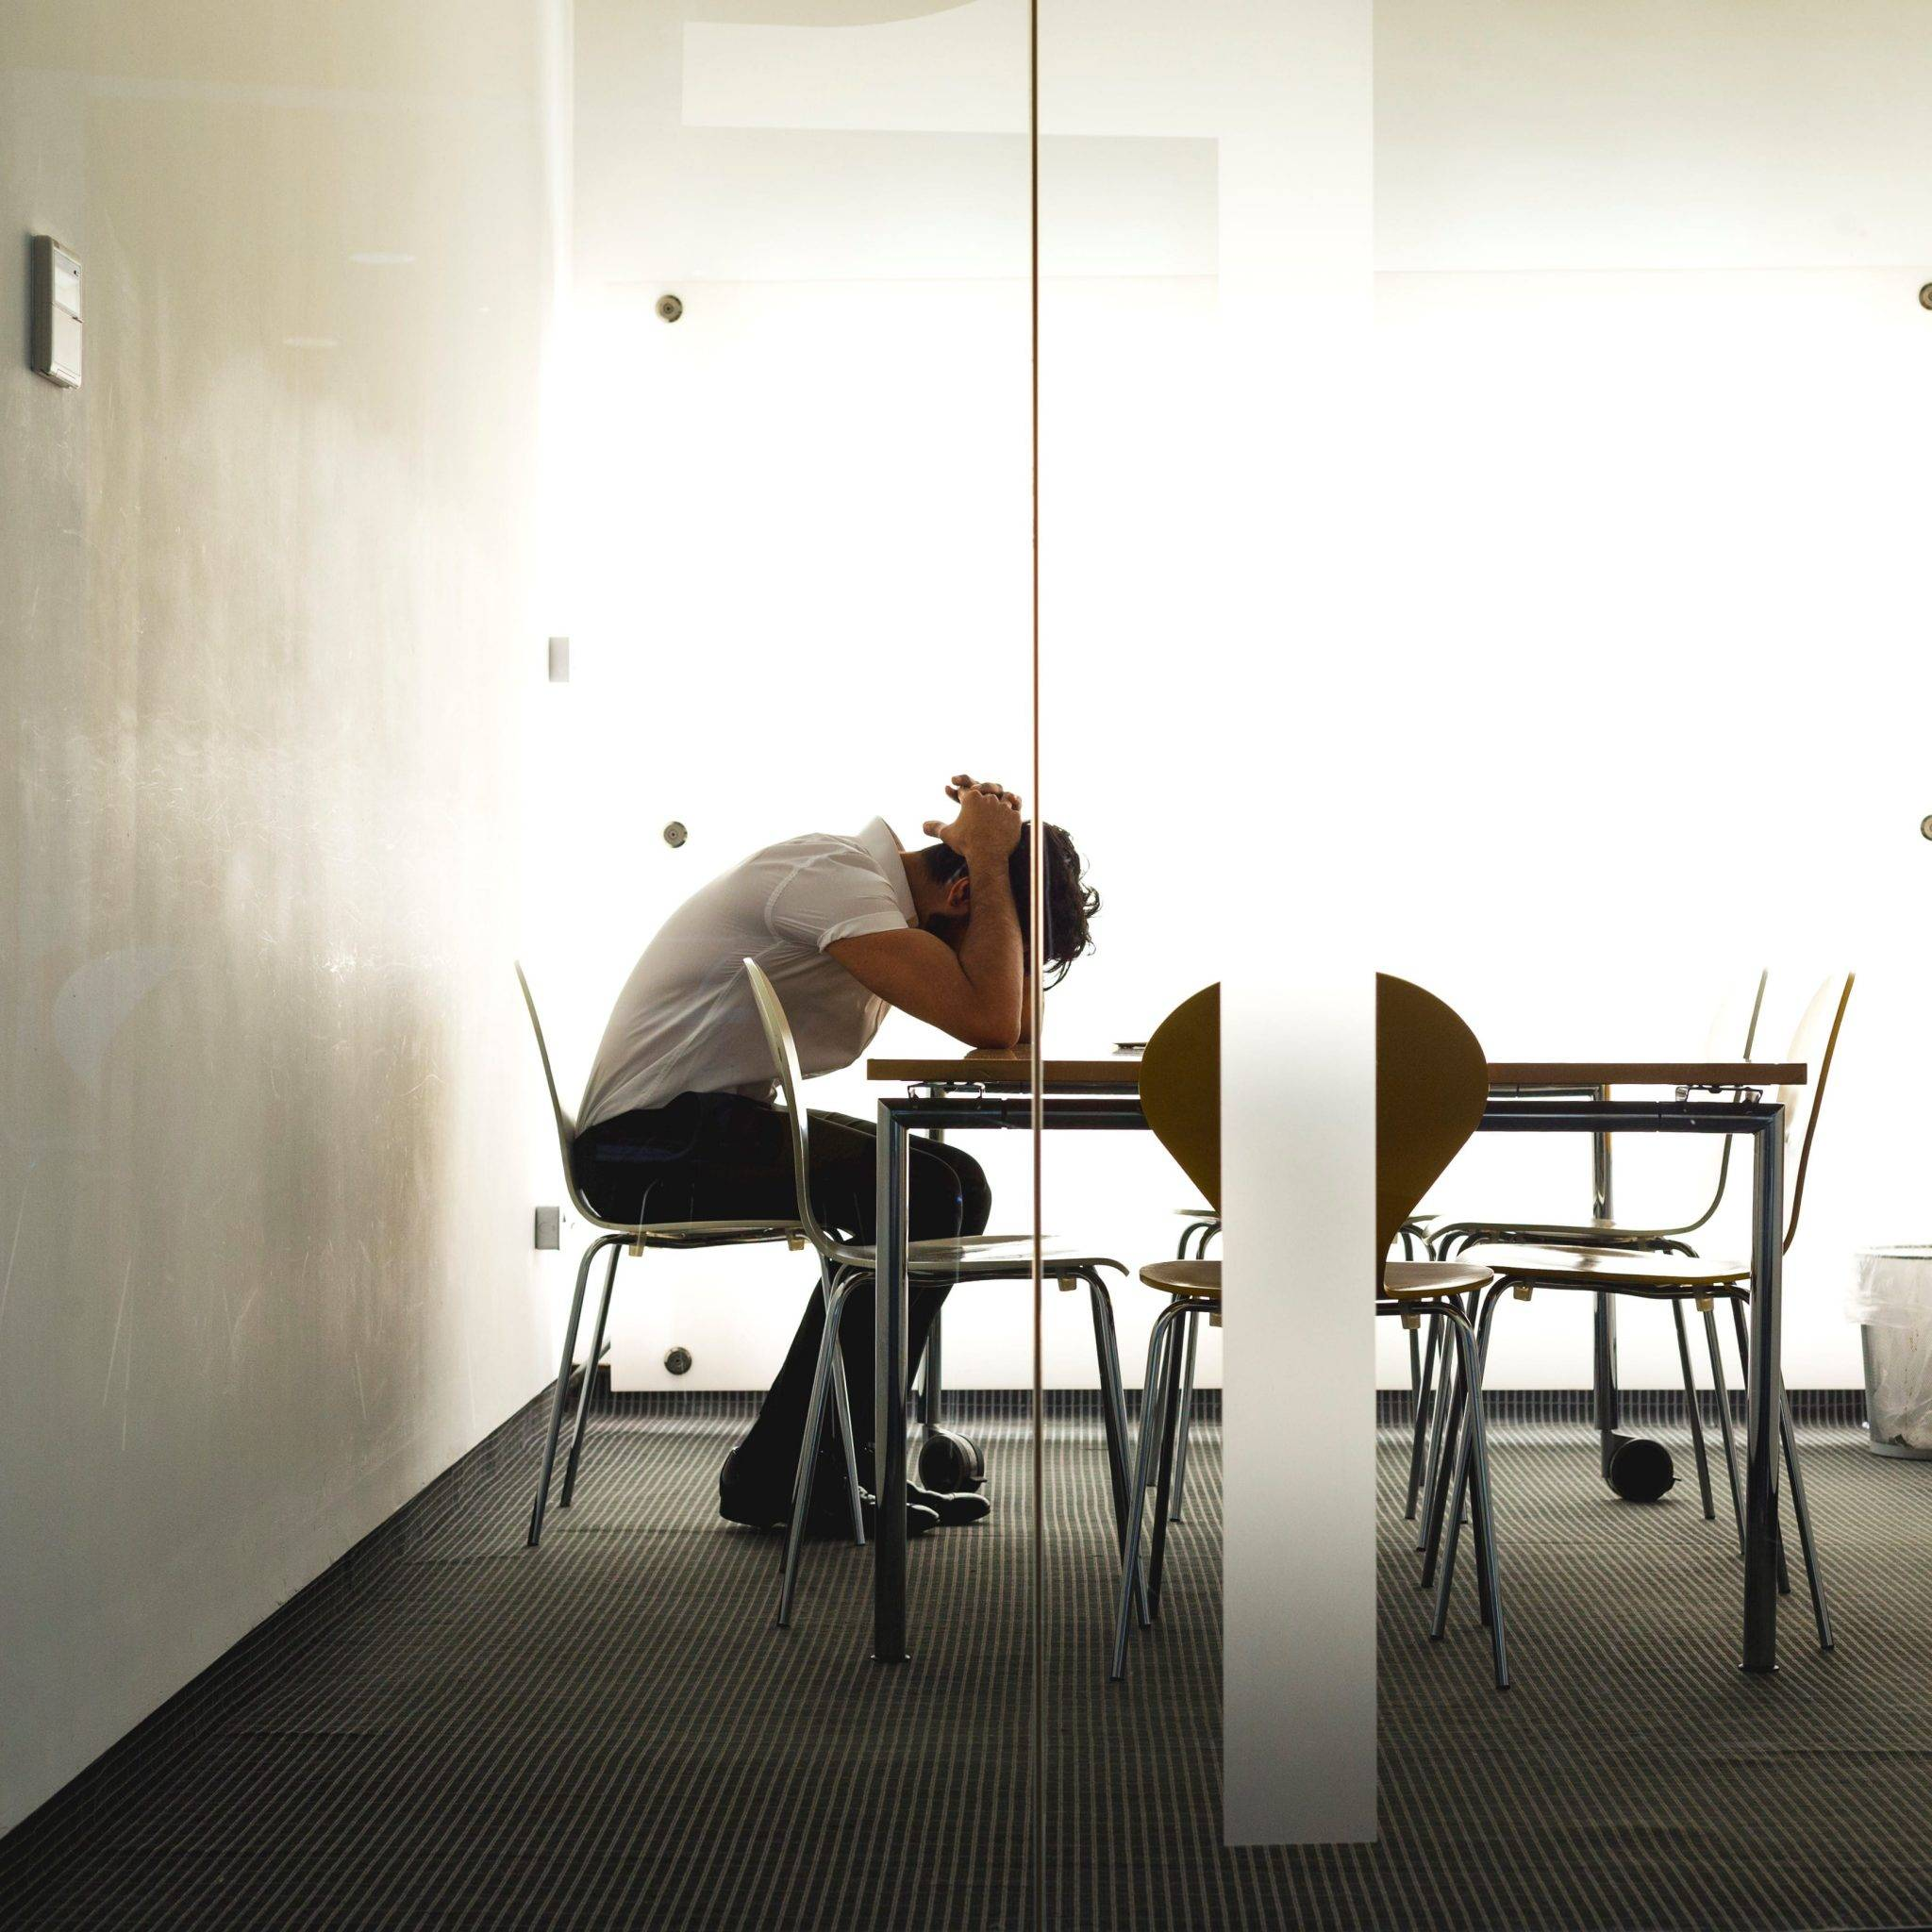 Tackling mental ill health in the workplace requires changes at the top